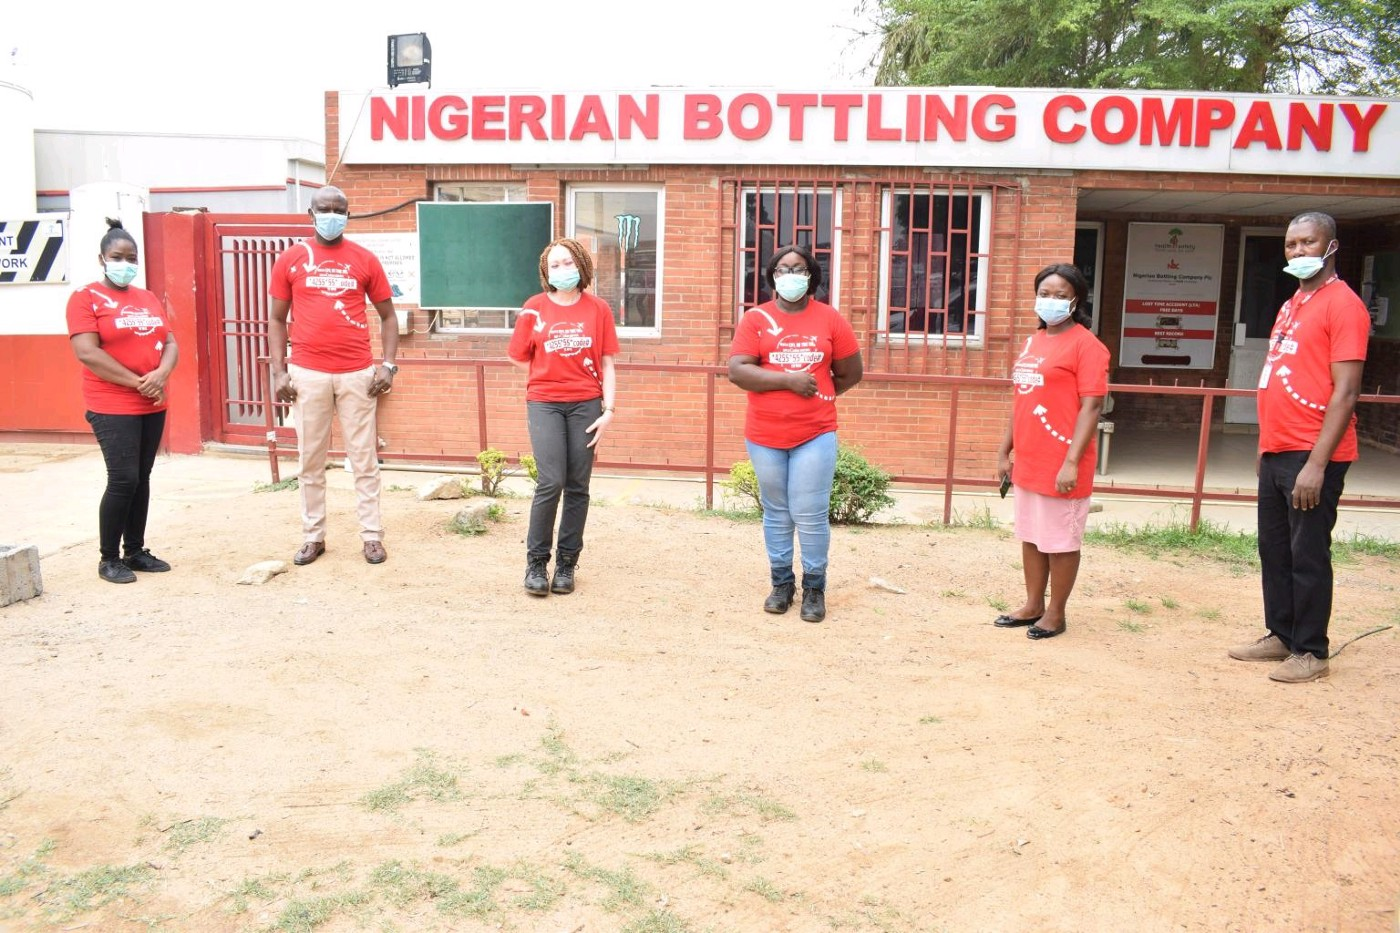 COVID-19: The Coca-Cola System and The Coca-Cola Foundation commit approximately $17m across Africa - Brand Spur